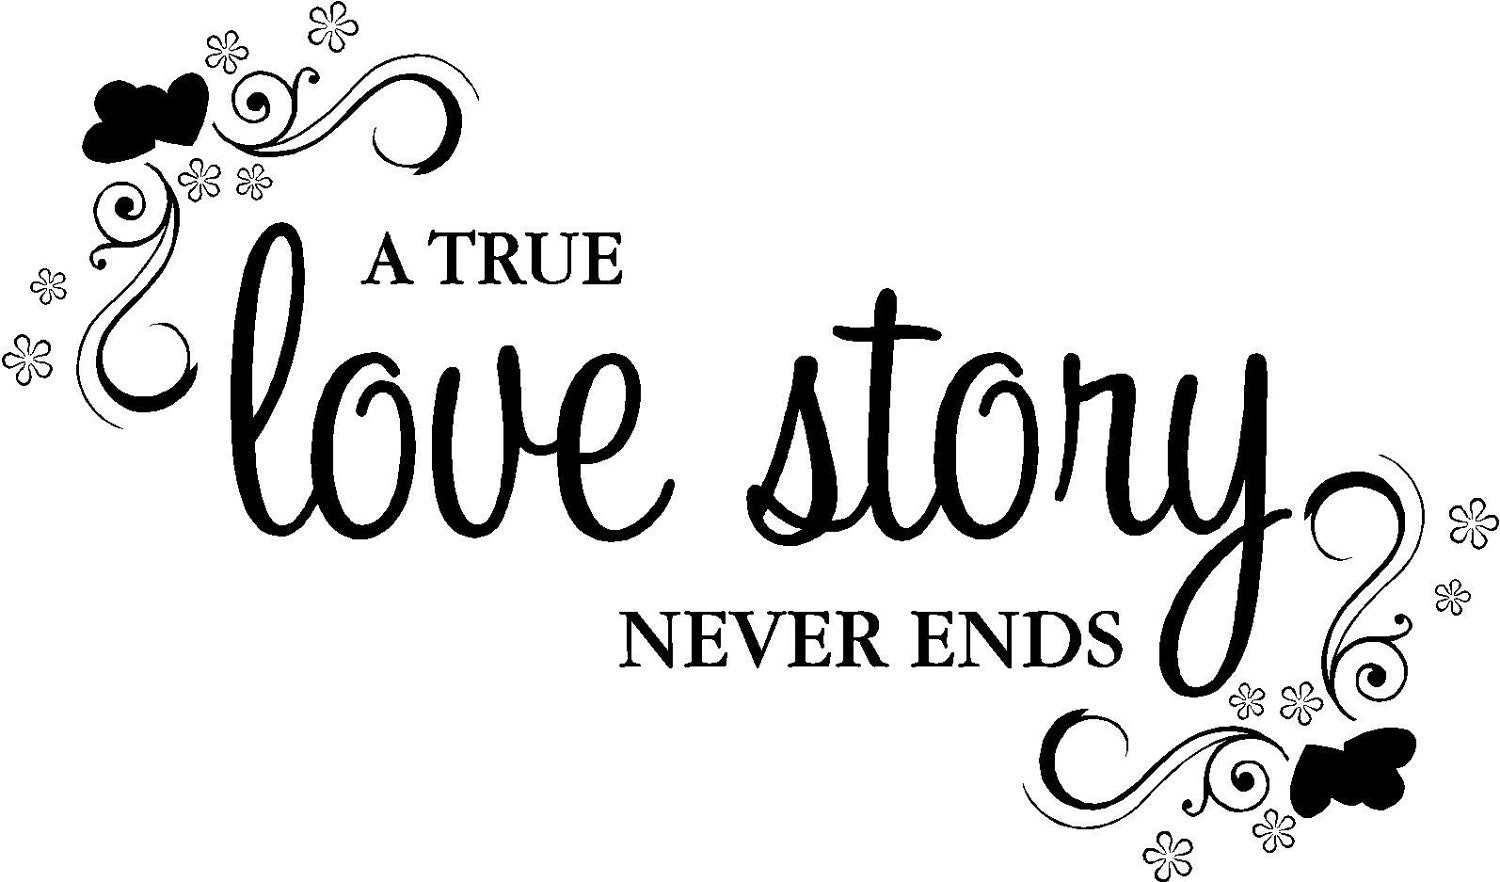 quote a true love story never ends with by vinylforall on etsy